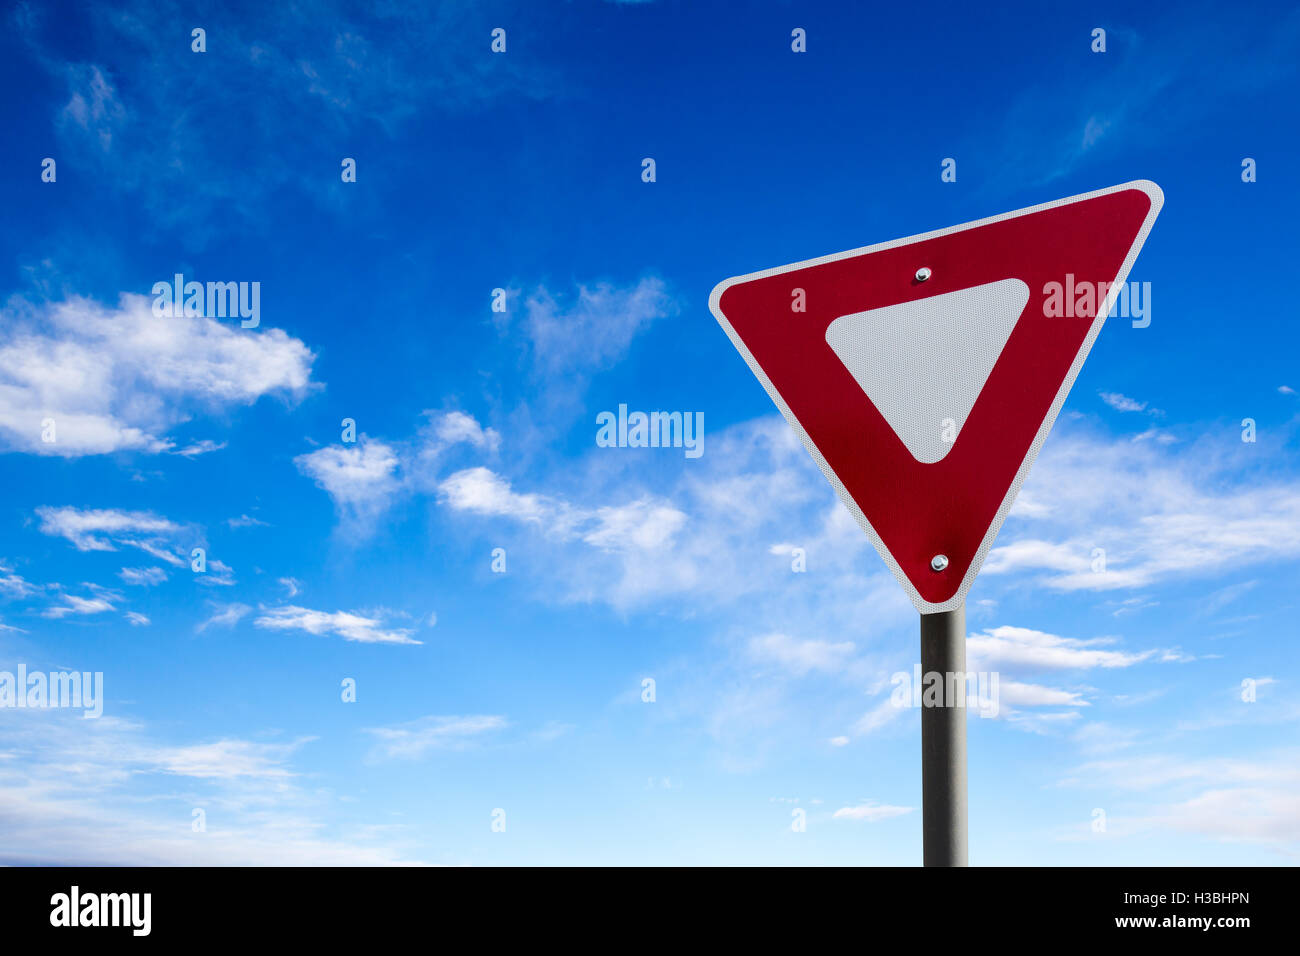 Conceptual yield sign against a blue cloudy sky. - Stock Image